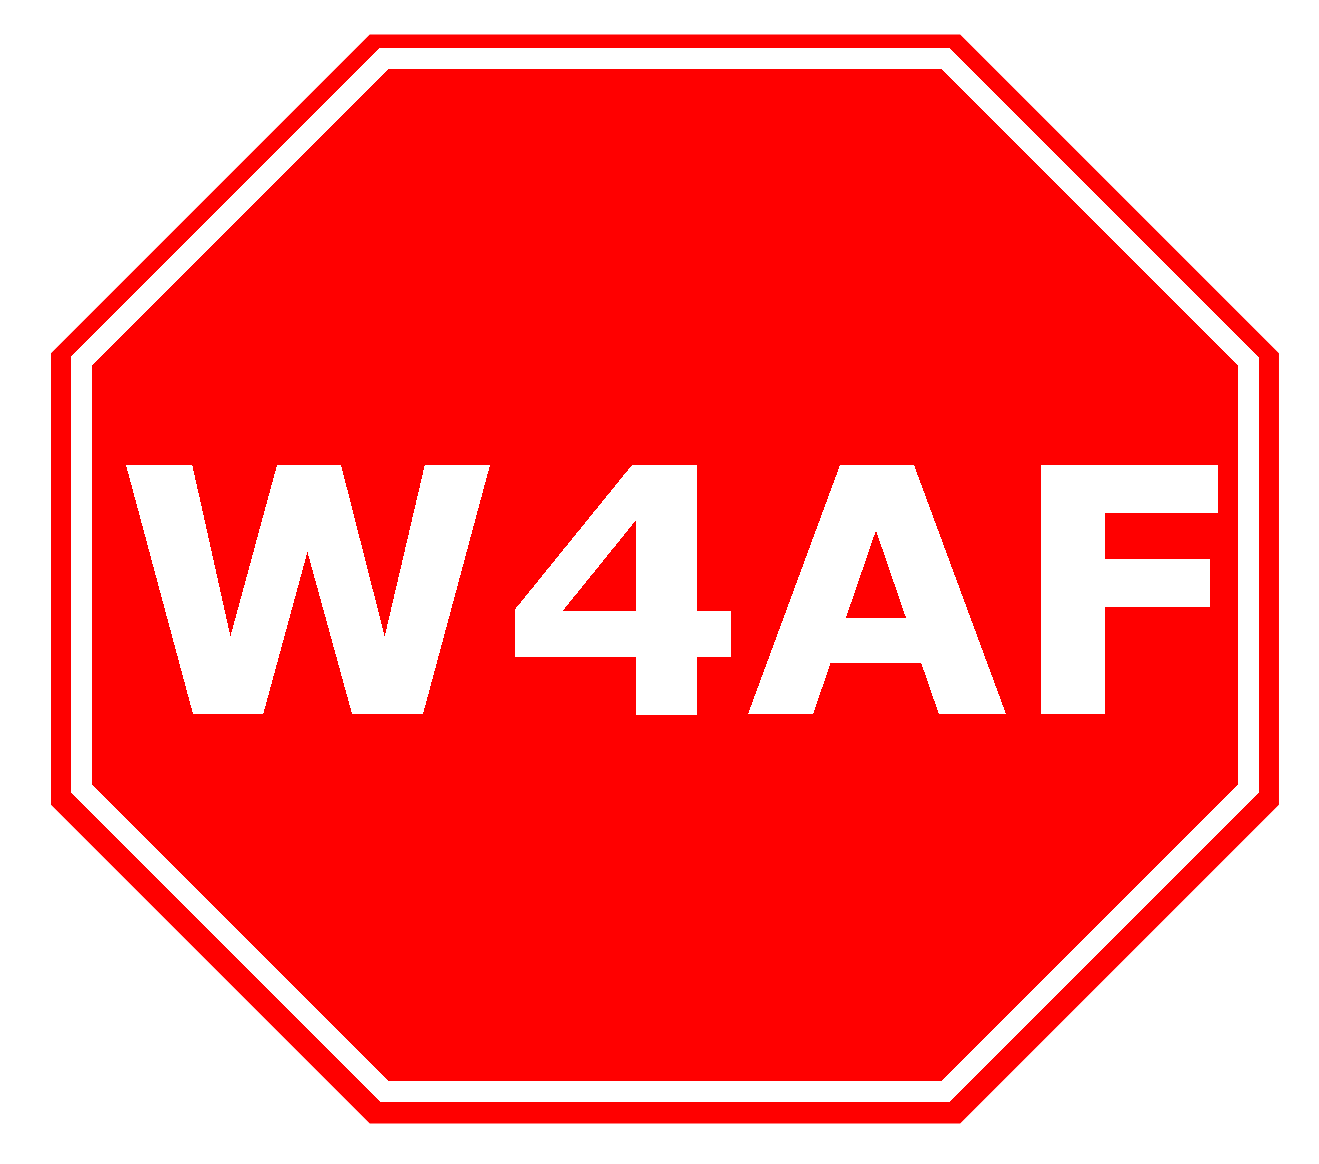 w4afvideos.co.uk